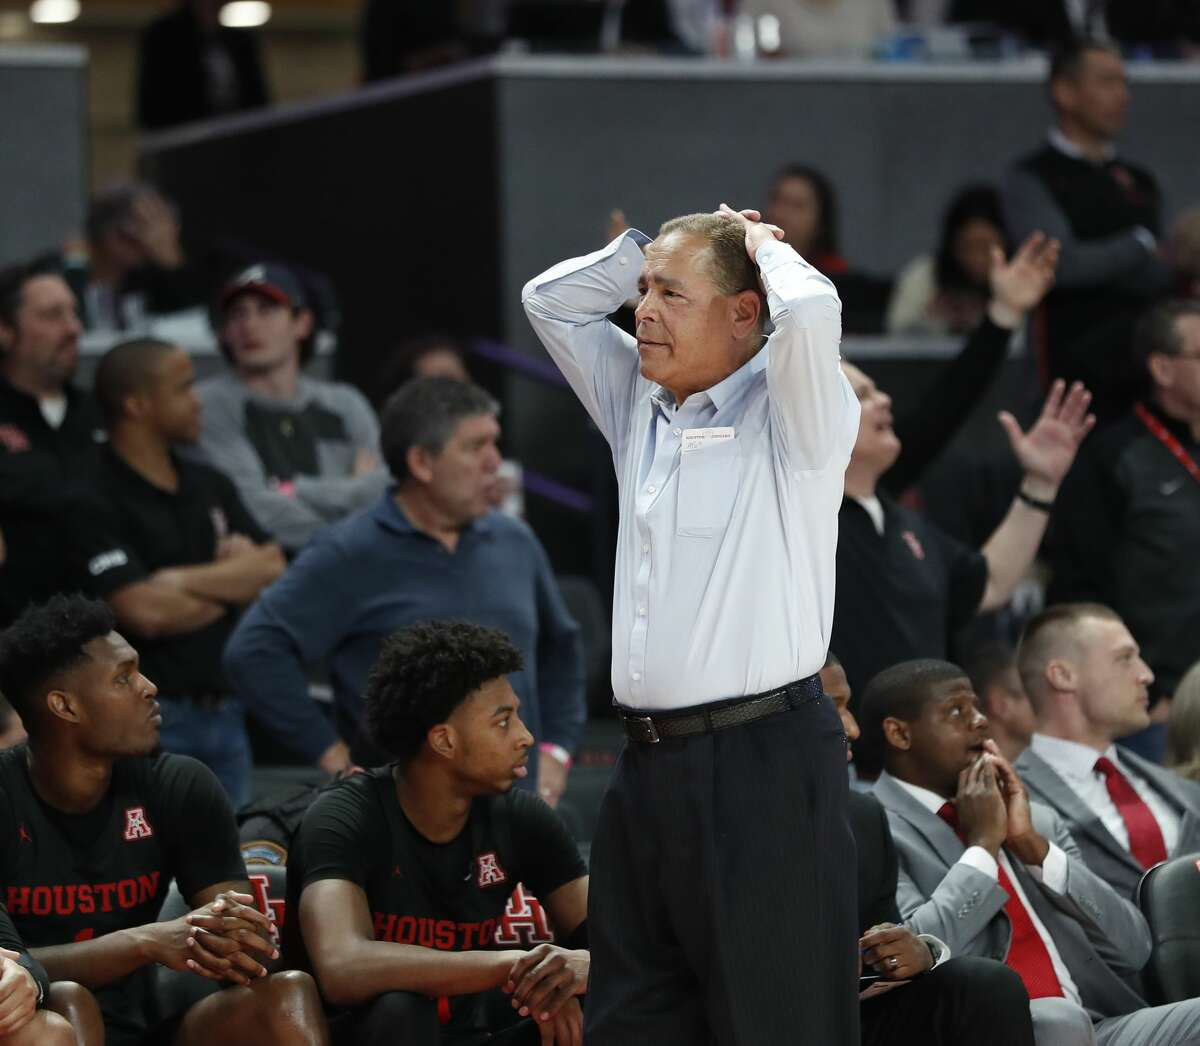 Houston Cougars head coach Kelvin Sampson reacts after a foul was called during the second half of an NCAA basketball game at the Fertitta in Houston, Thursday, Jan. 23, 2020.